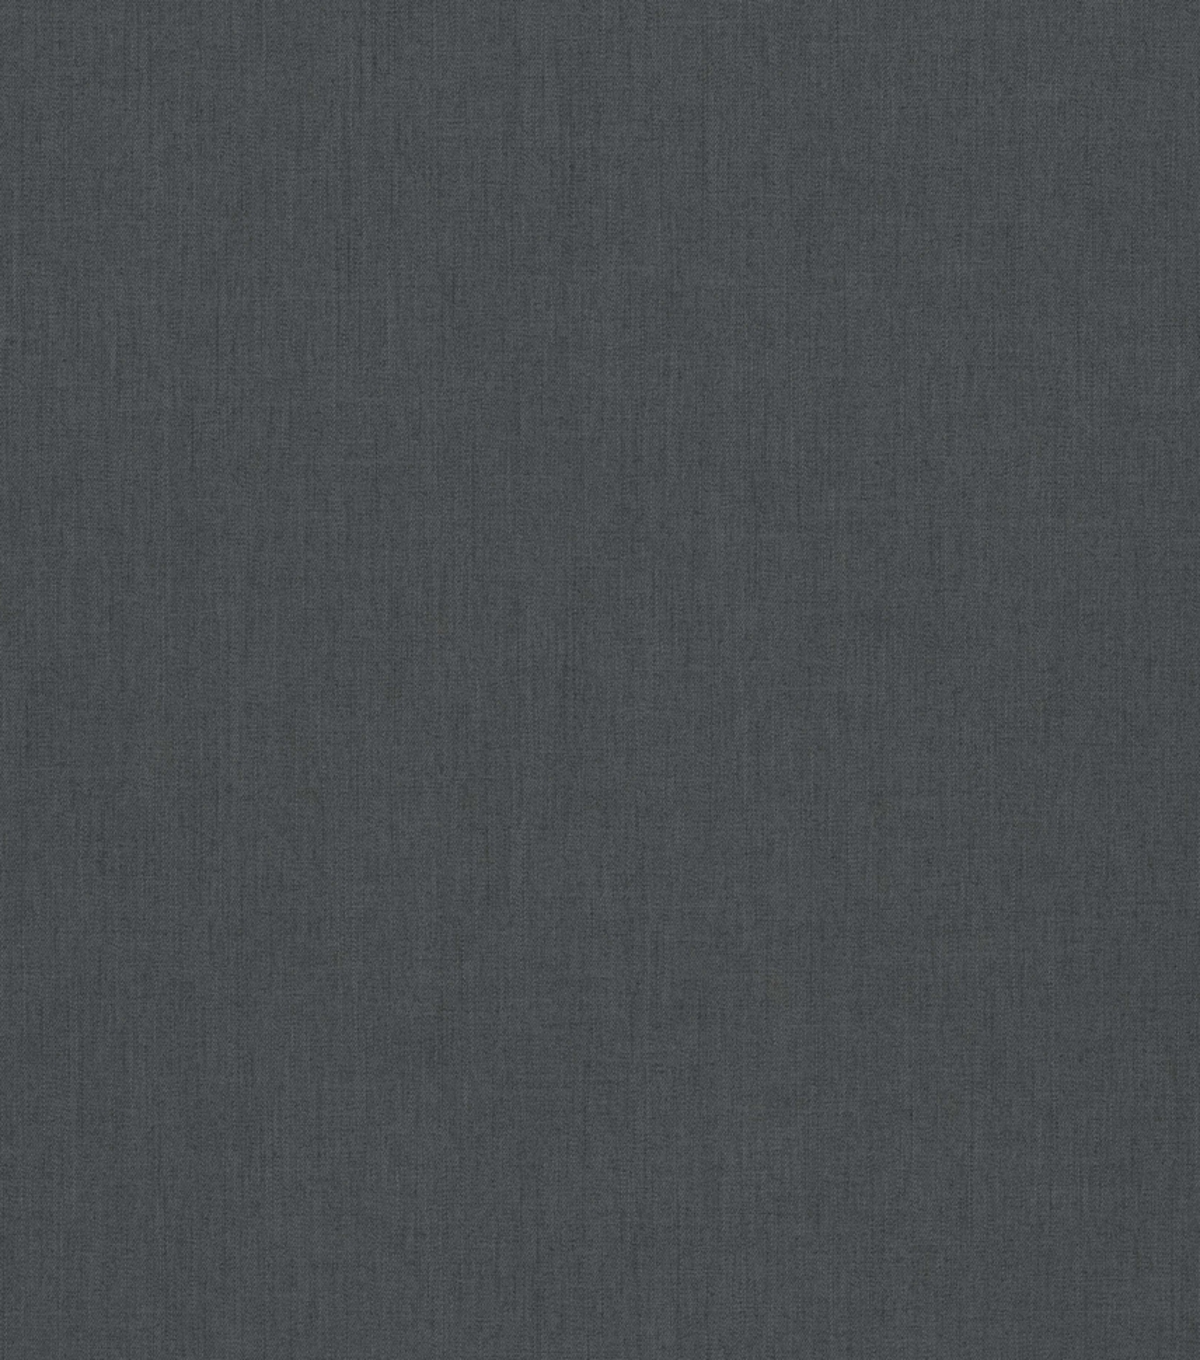 Home Decor 8\u0022x8\u0022 Fabric Swatch-Manhattan Slate